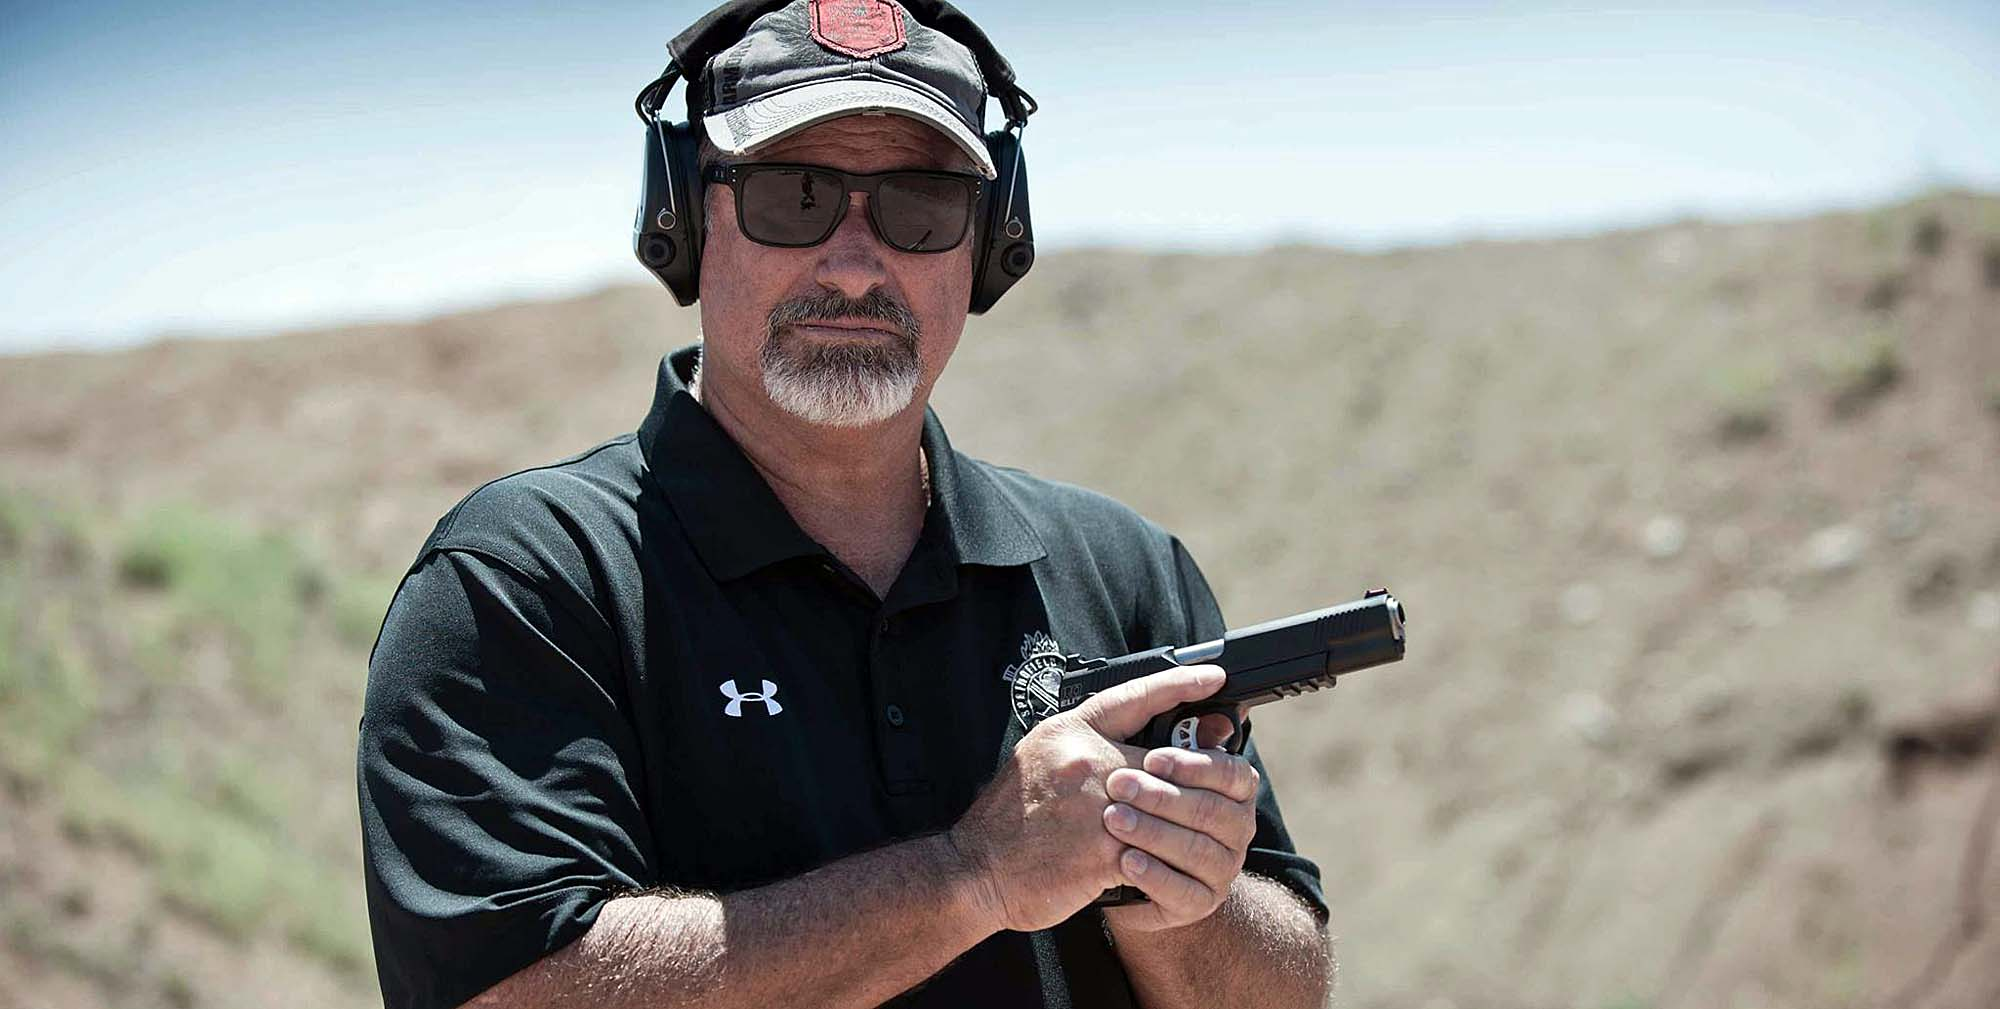 Springfield Armory introduces the Range Officer Elite